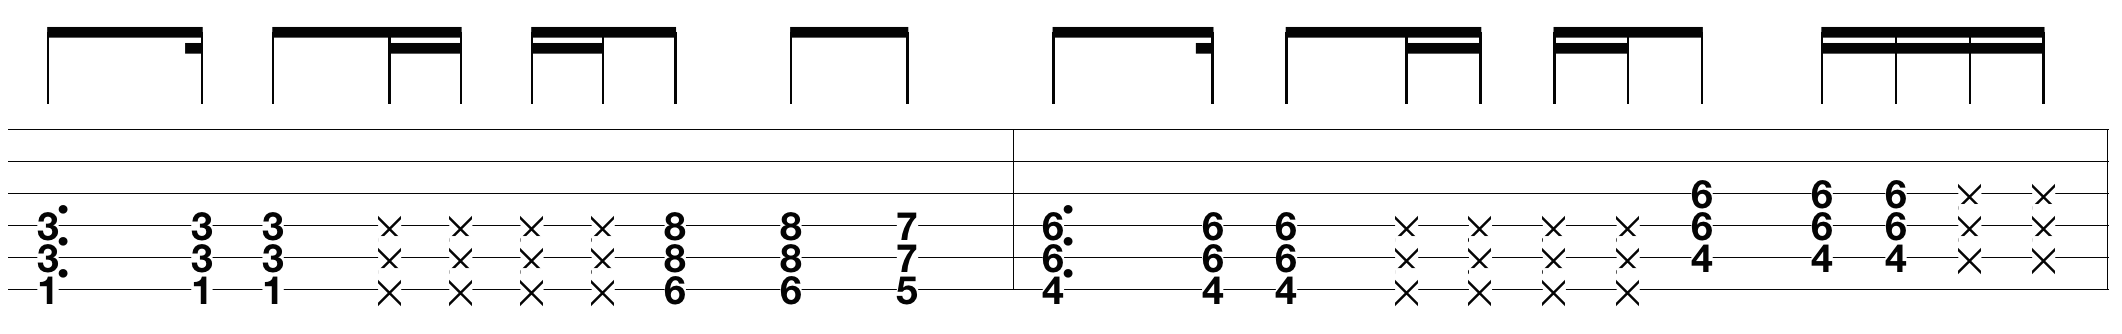 easy-song-guitar-tabs_2.png